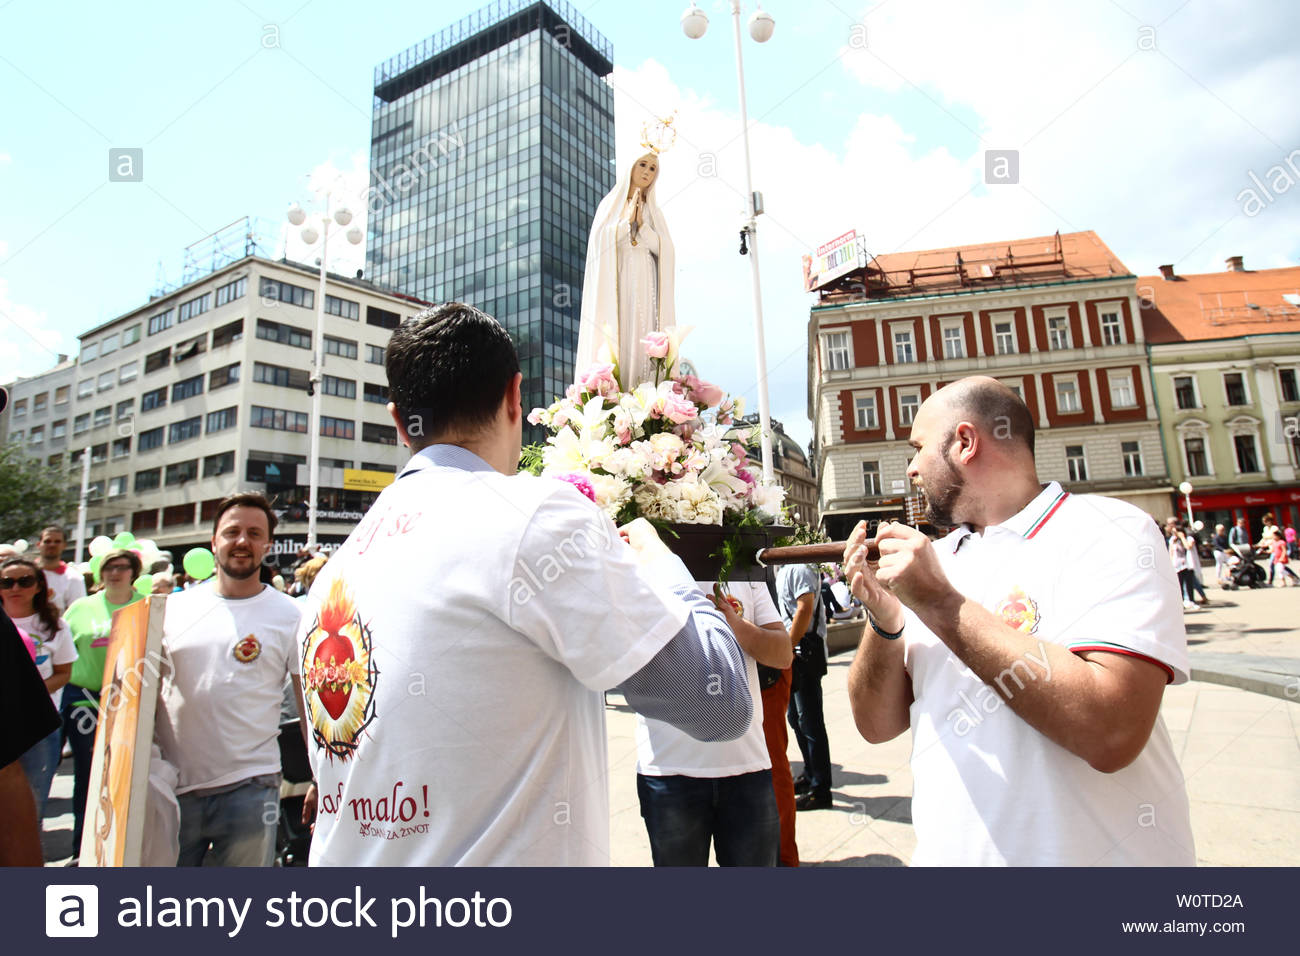 ZAGREB,CROATIA - MAY 19, 2018 : People carrying a Virgin Mary statue while marching against abortions and in support of every child under name March for life in city center in Zagreb, Croatia. Stock Photo